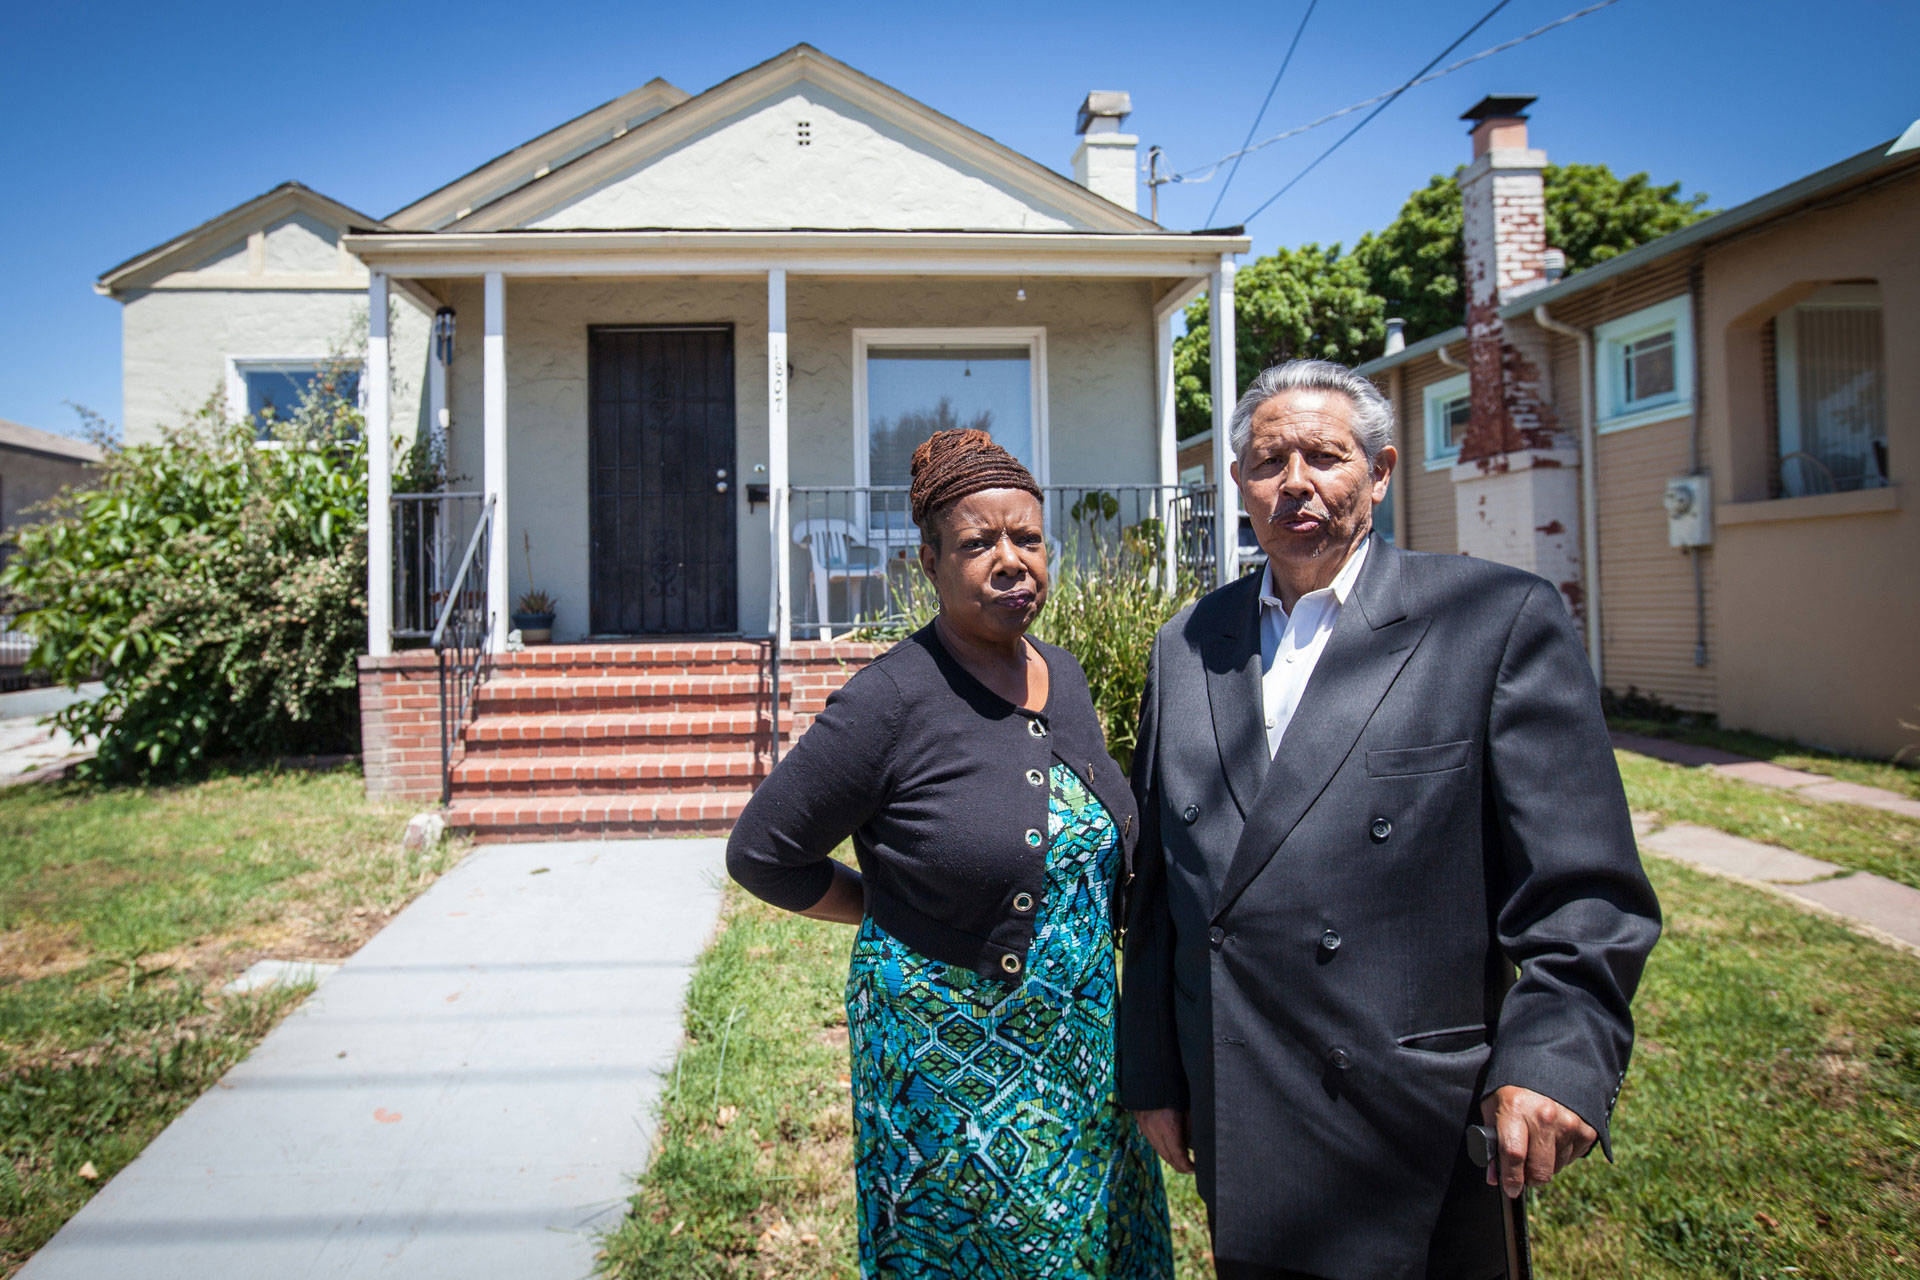 Vanessa and Richard Bulnes still long for their old home in East Oakland. Deborah Svoboda/KQED